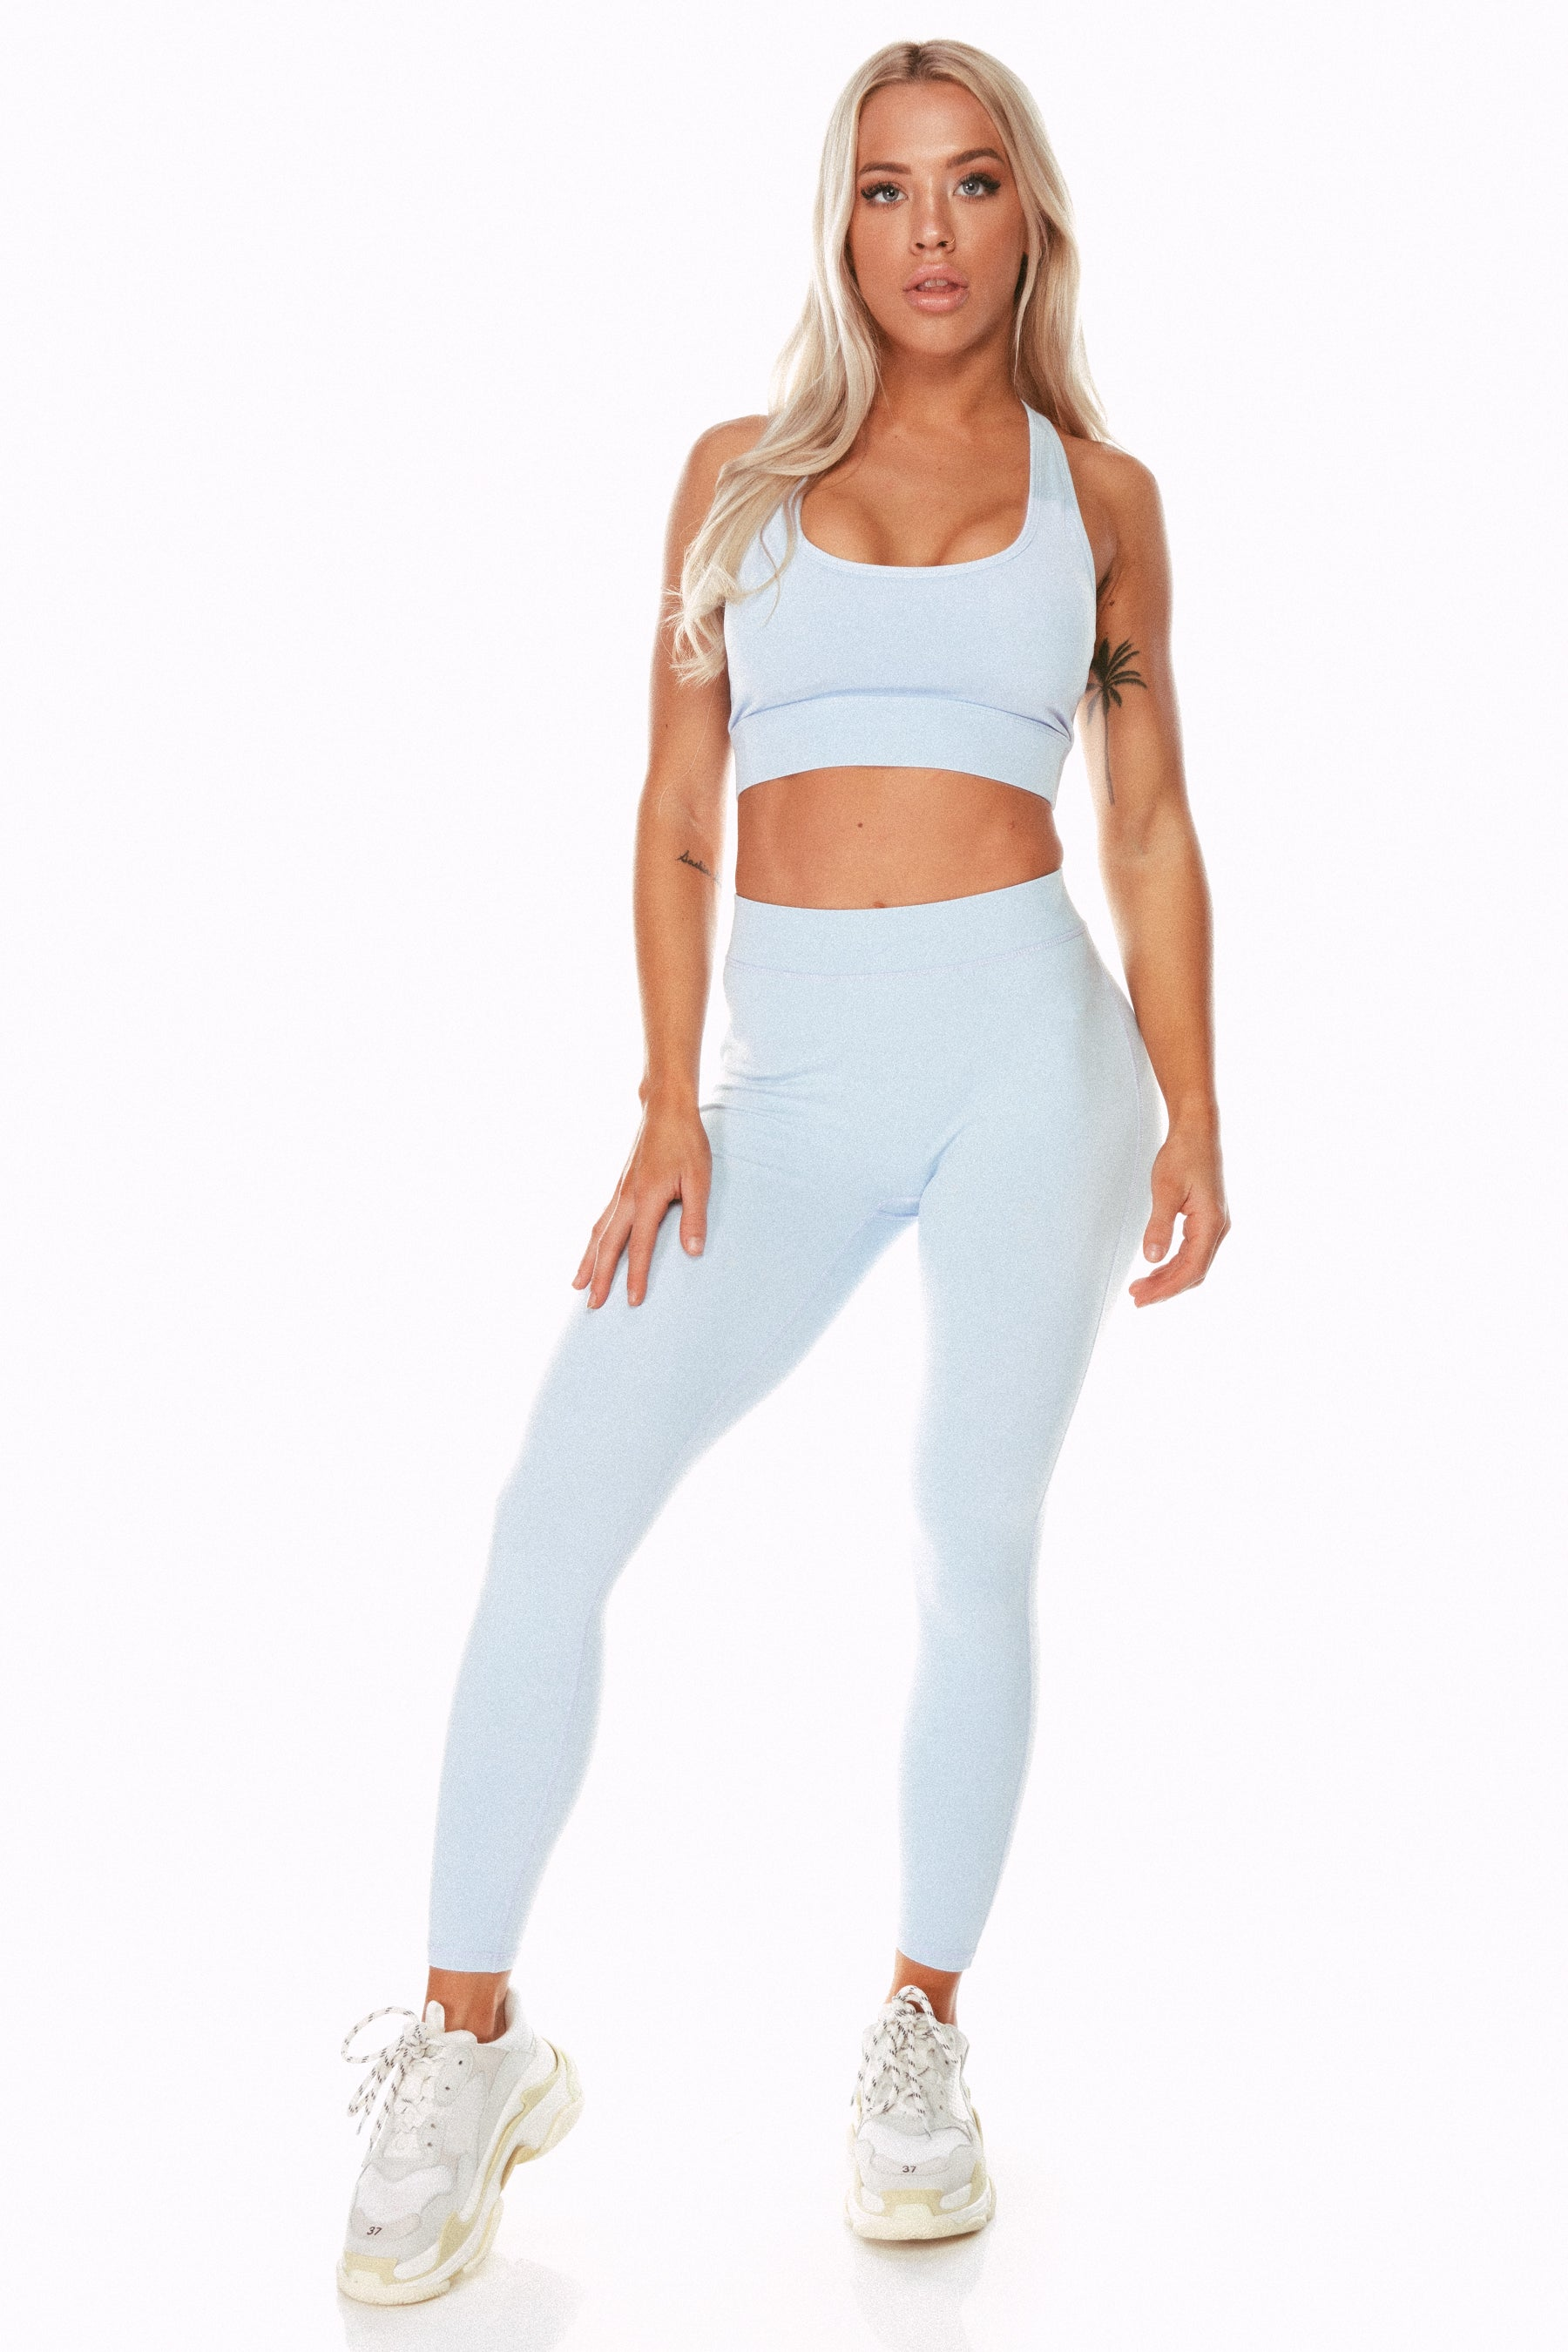 Staple Pale Blue Sports Bra